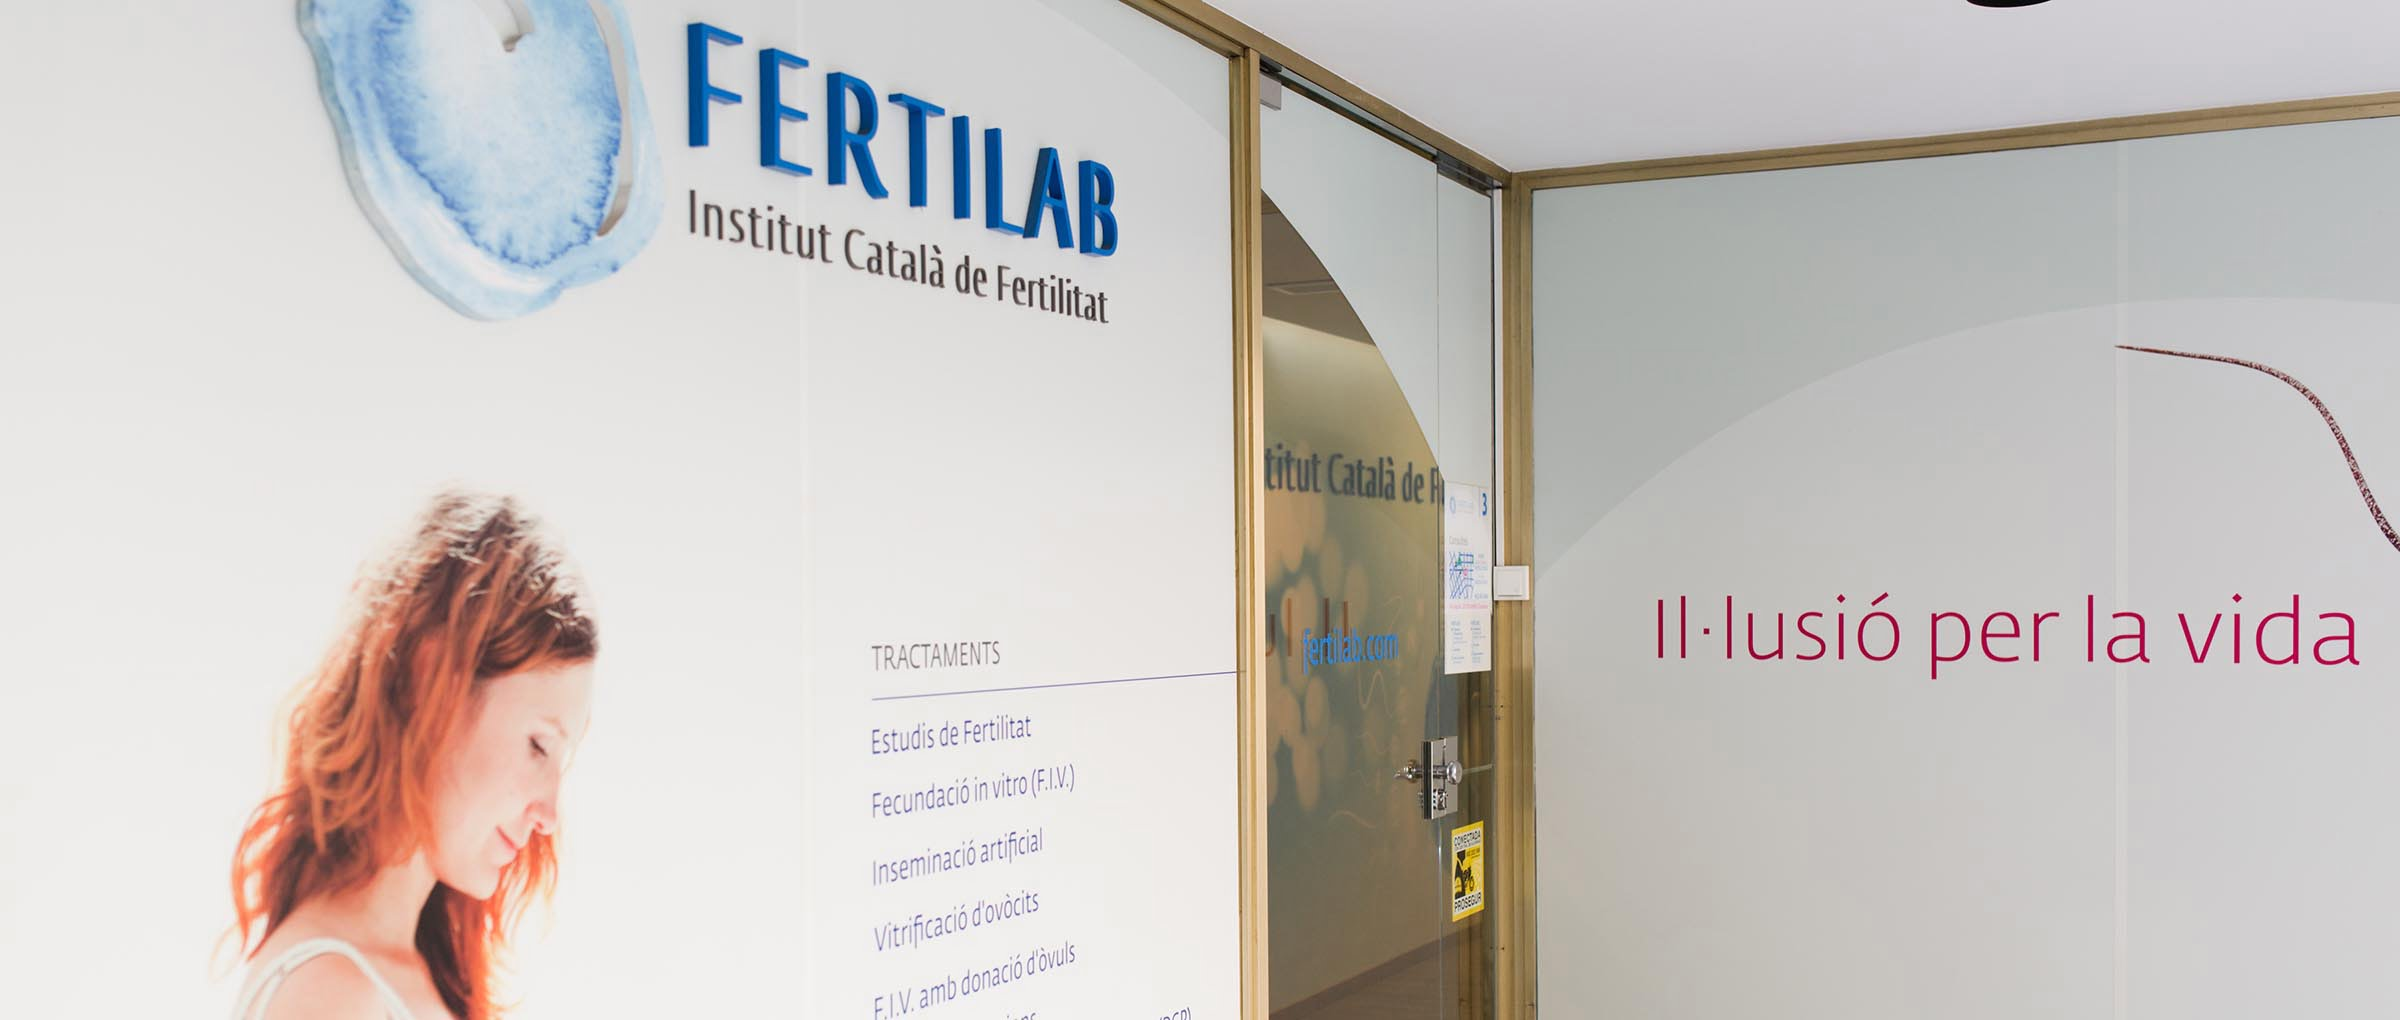 Fertilab entrada a la clinica